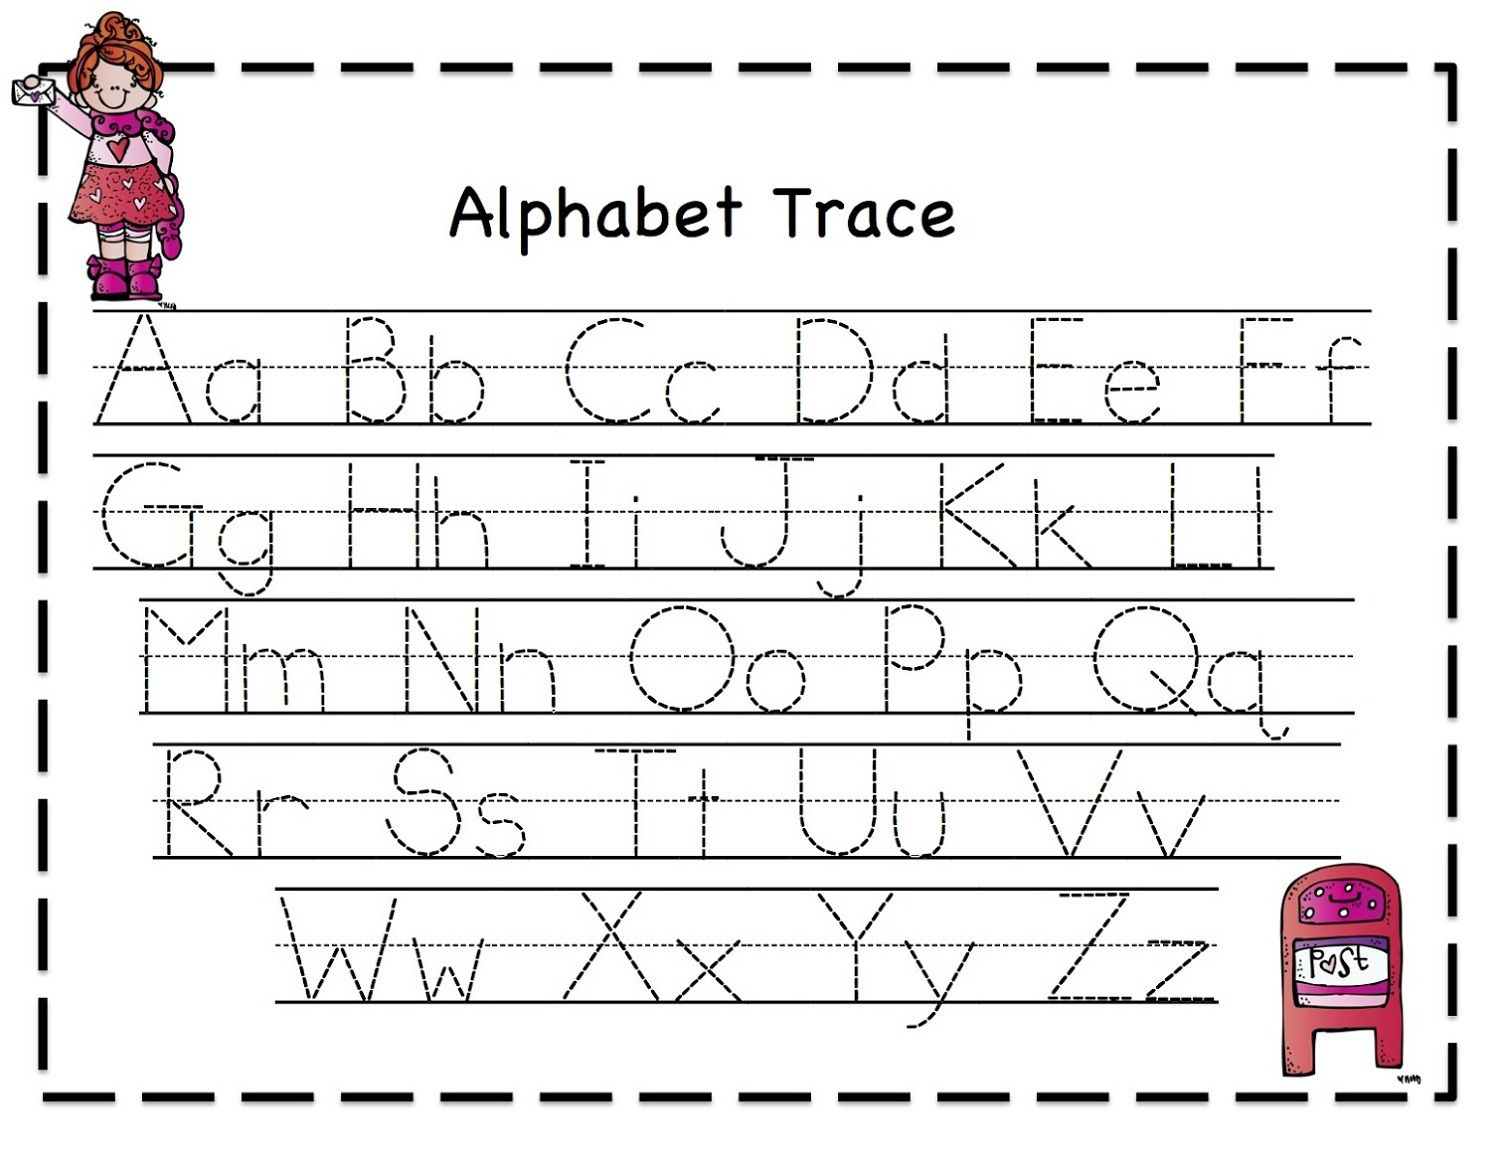 worksheet Tracing Letter Worksheets tracing letters for girl activities pinterest girl